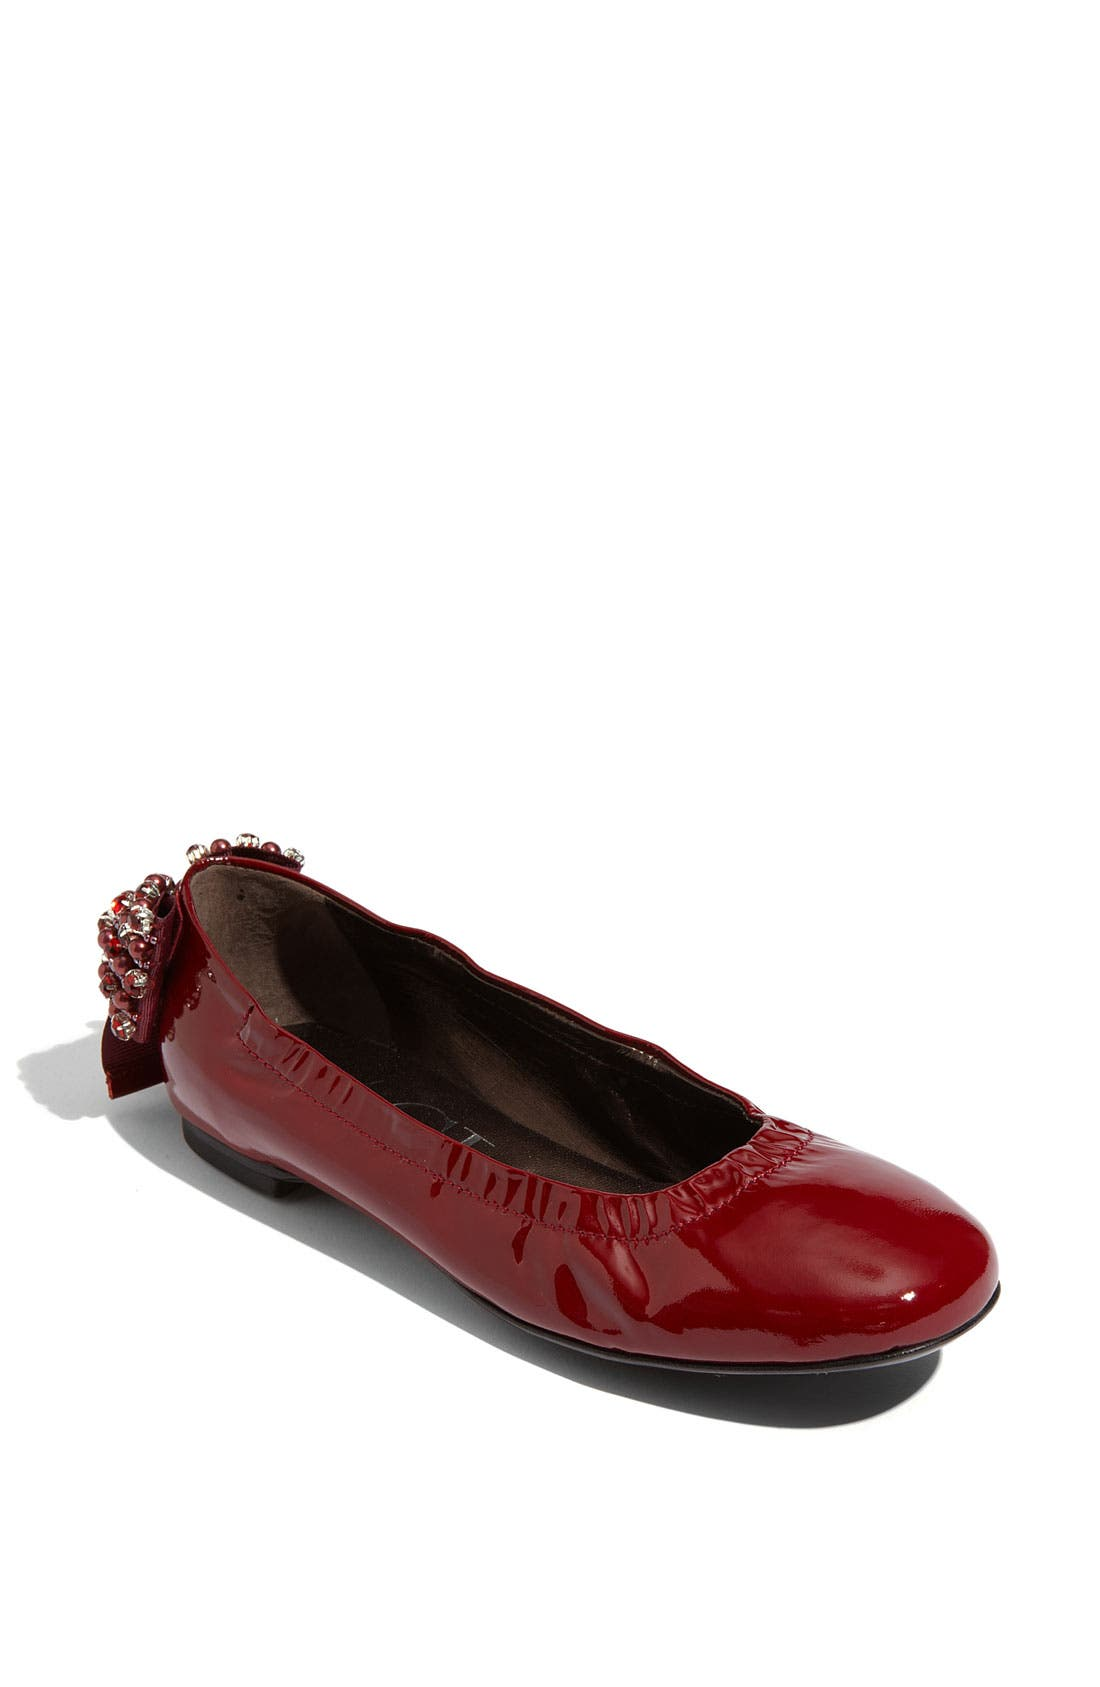 Alternate Image 1 Selected - Attilio Giusti Leombruni Embellished Bow Flat